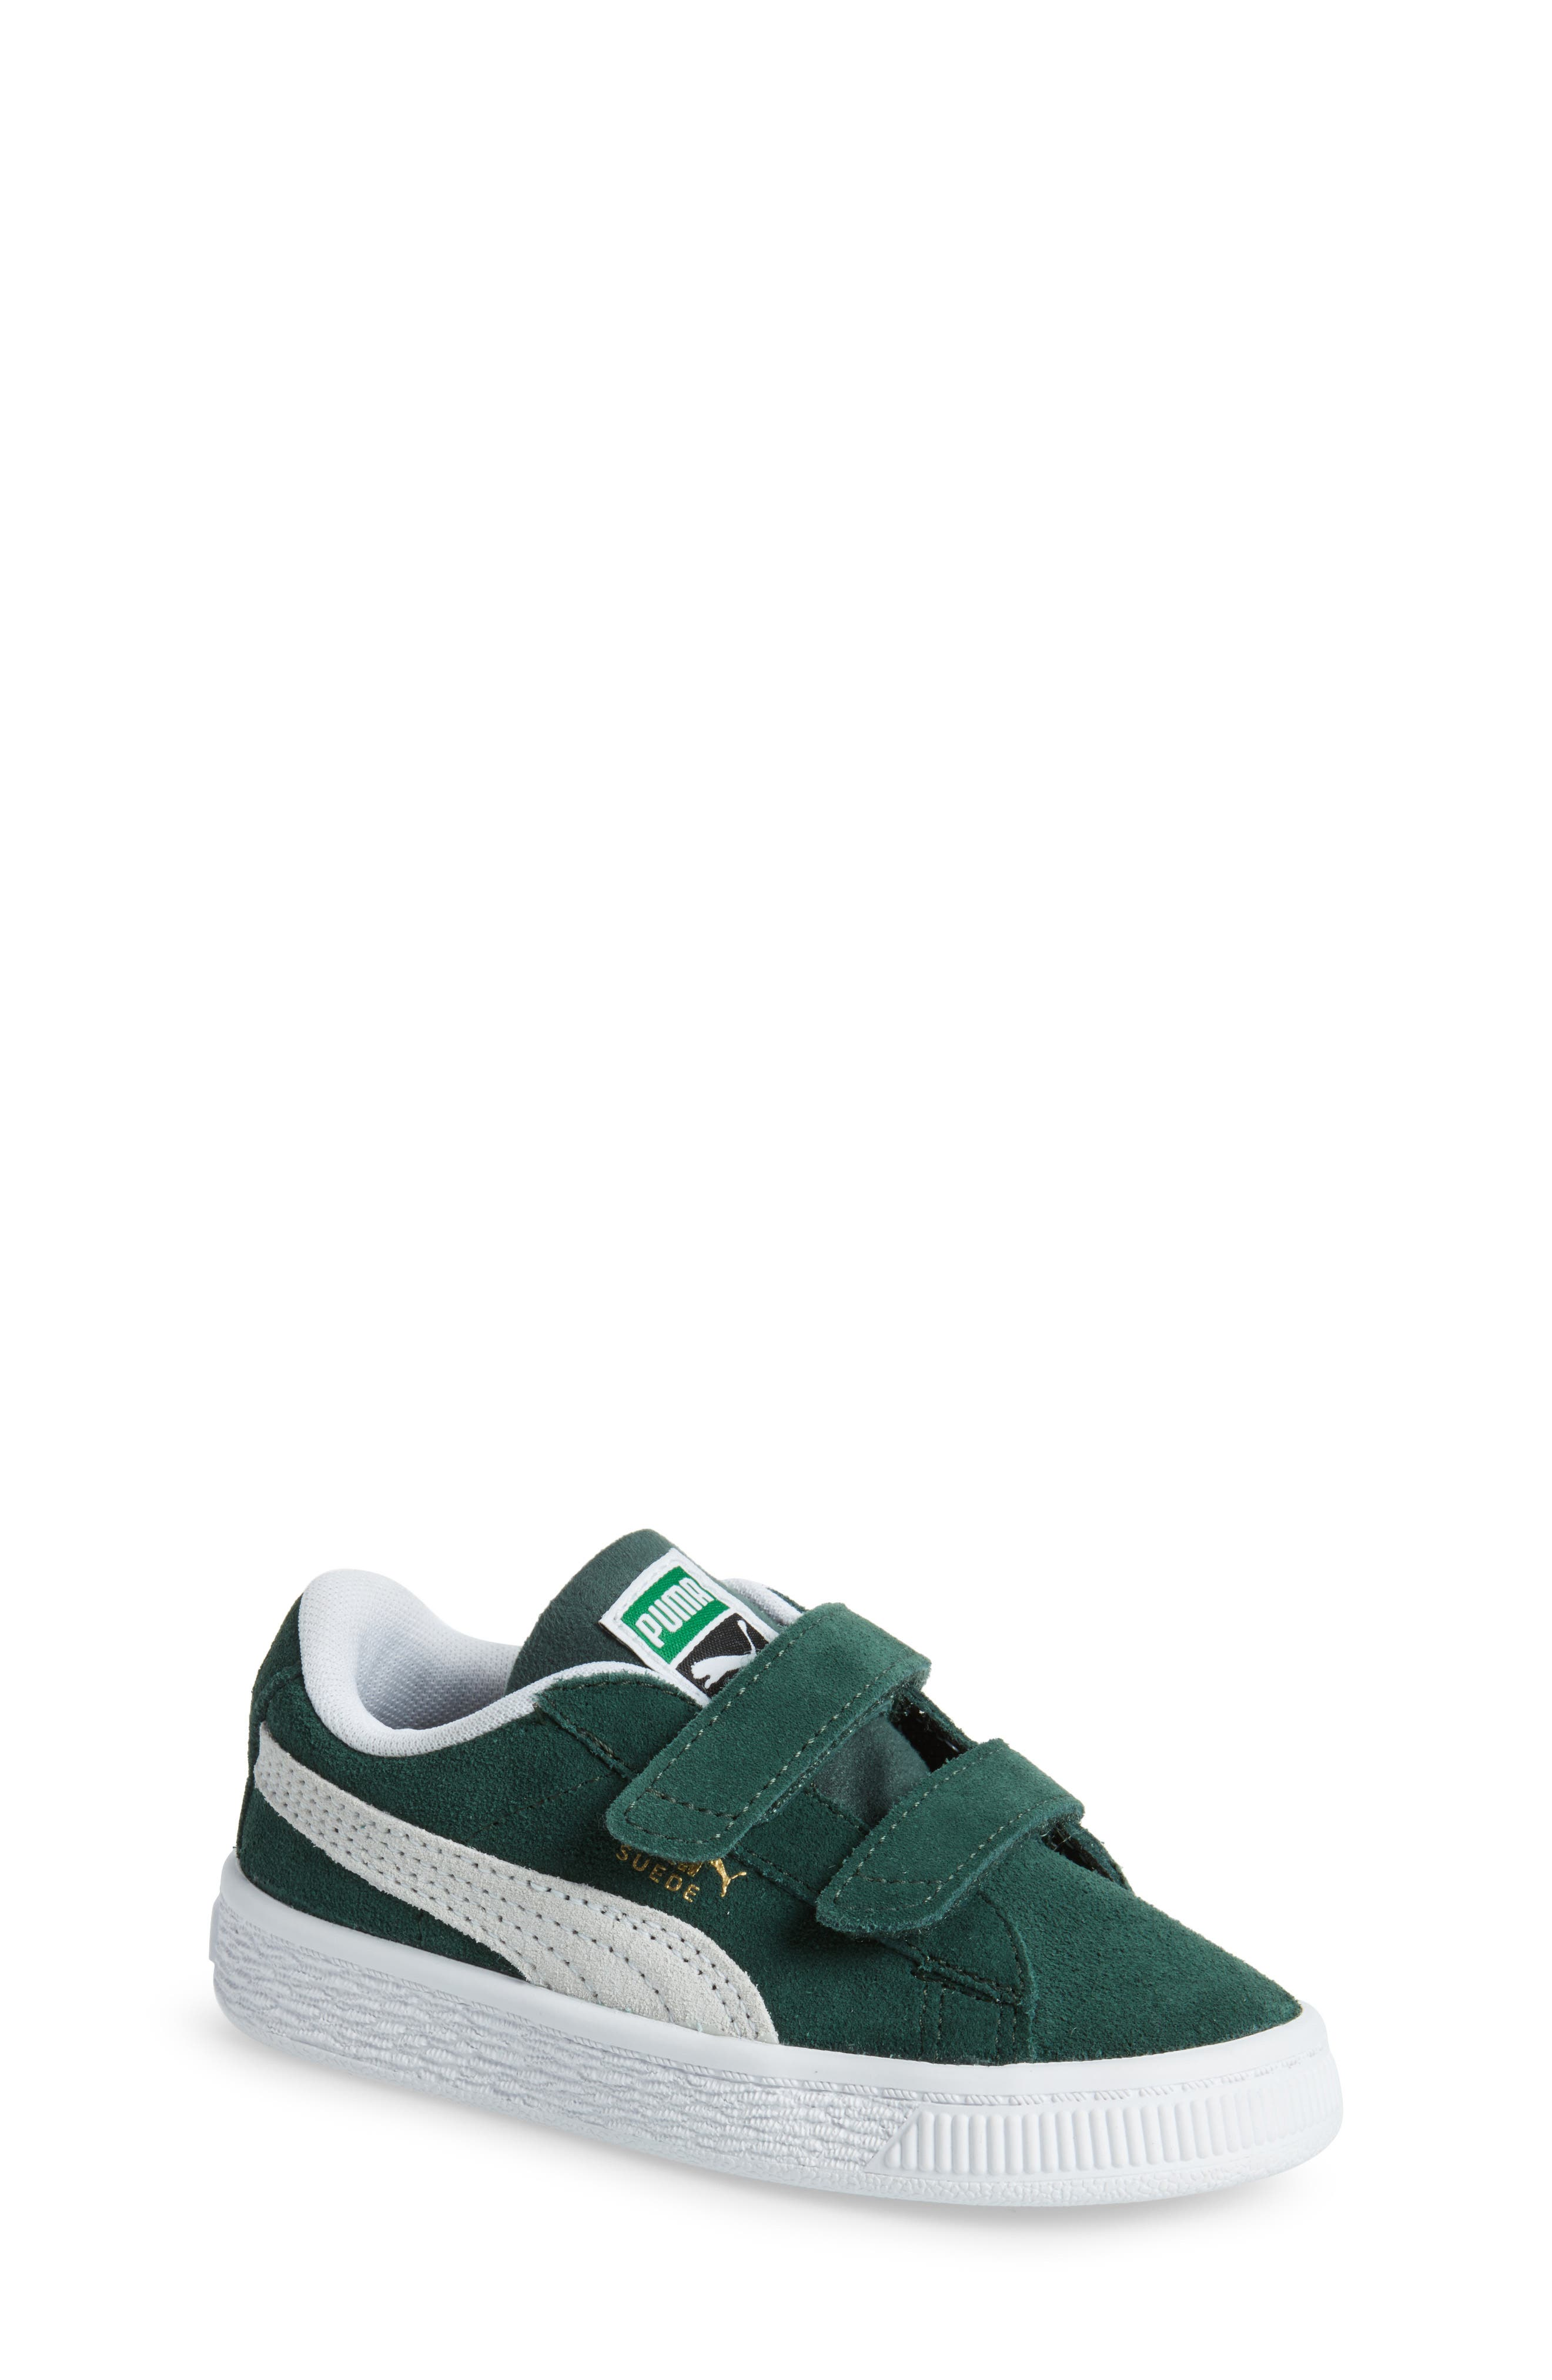 puma shoes green and white bedding